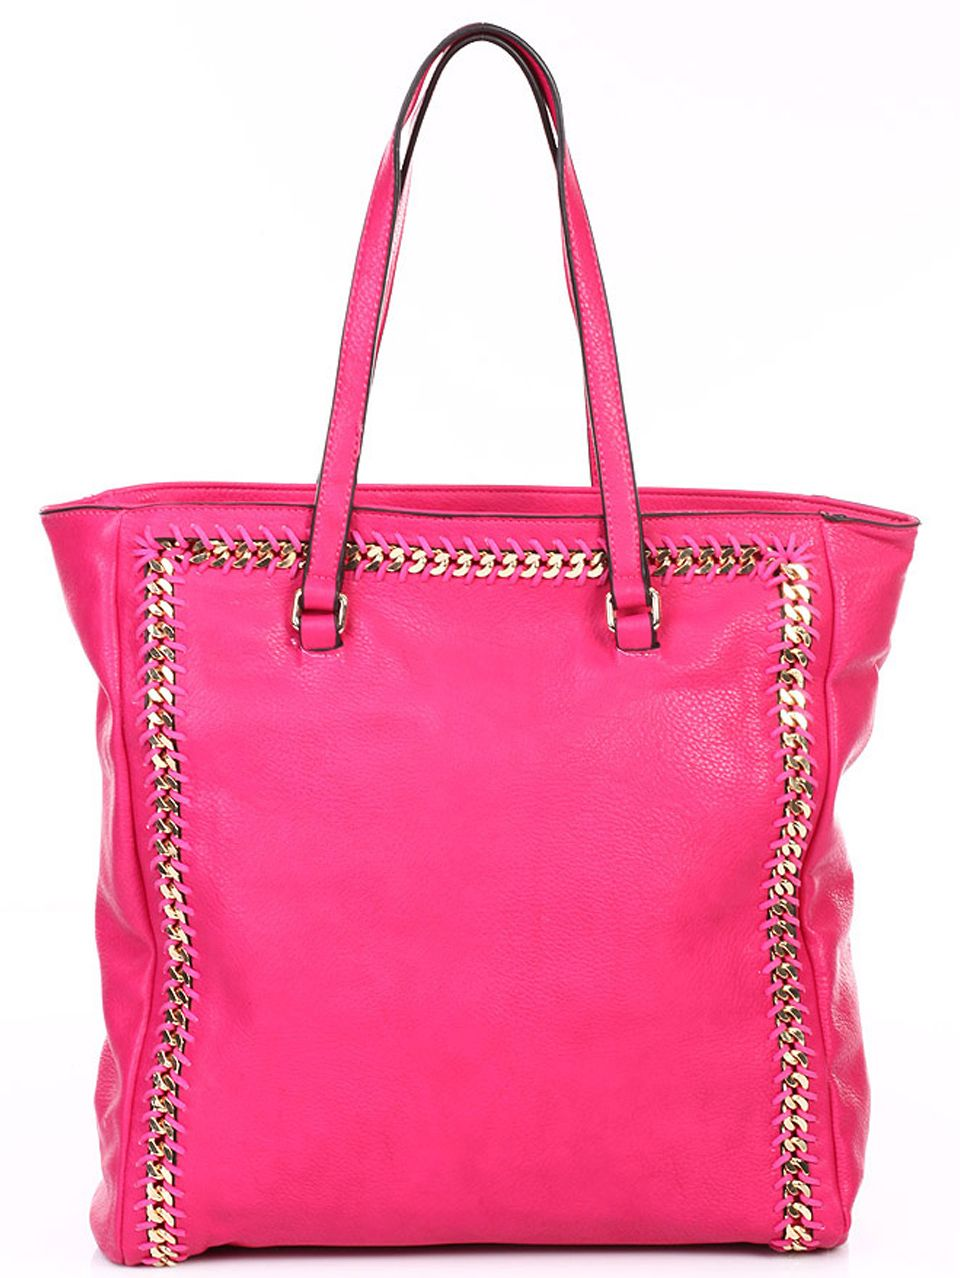 Fuchsia Hot Pink Leather Tote